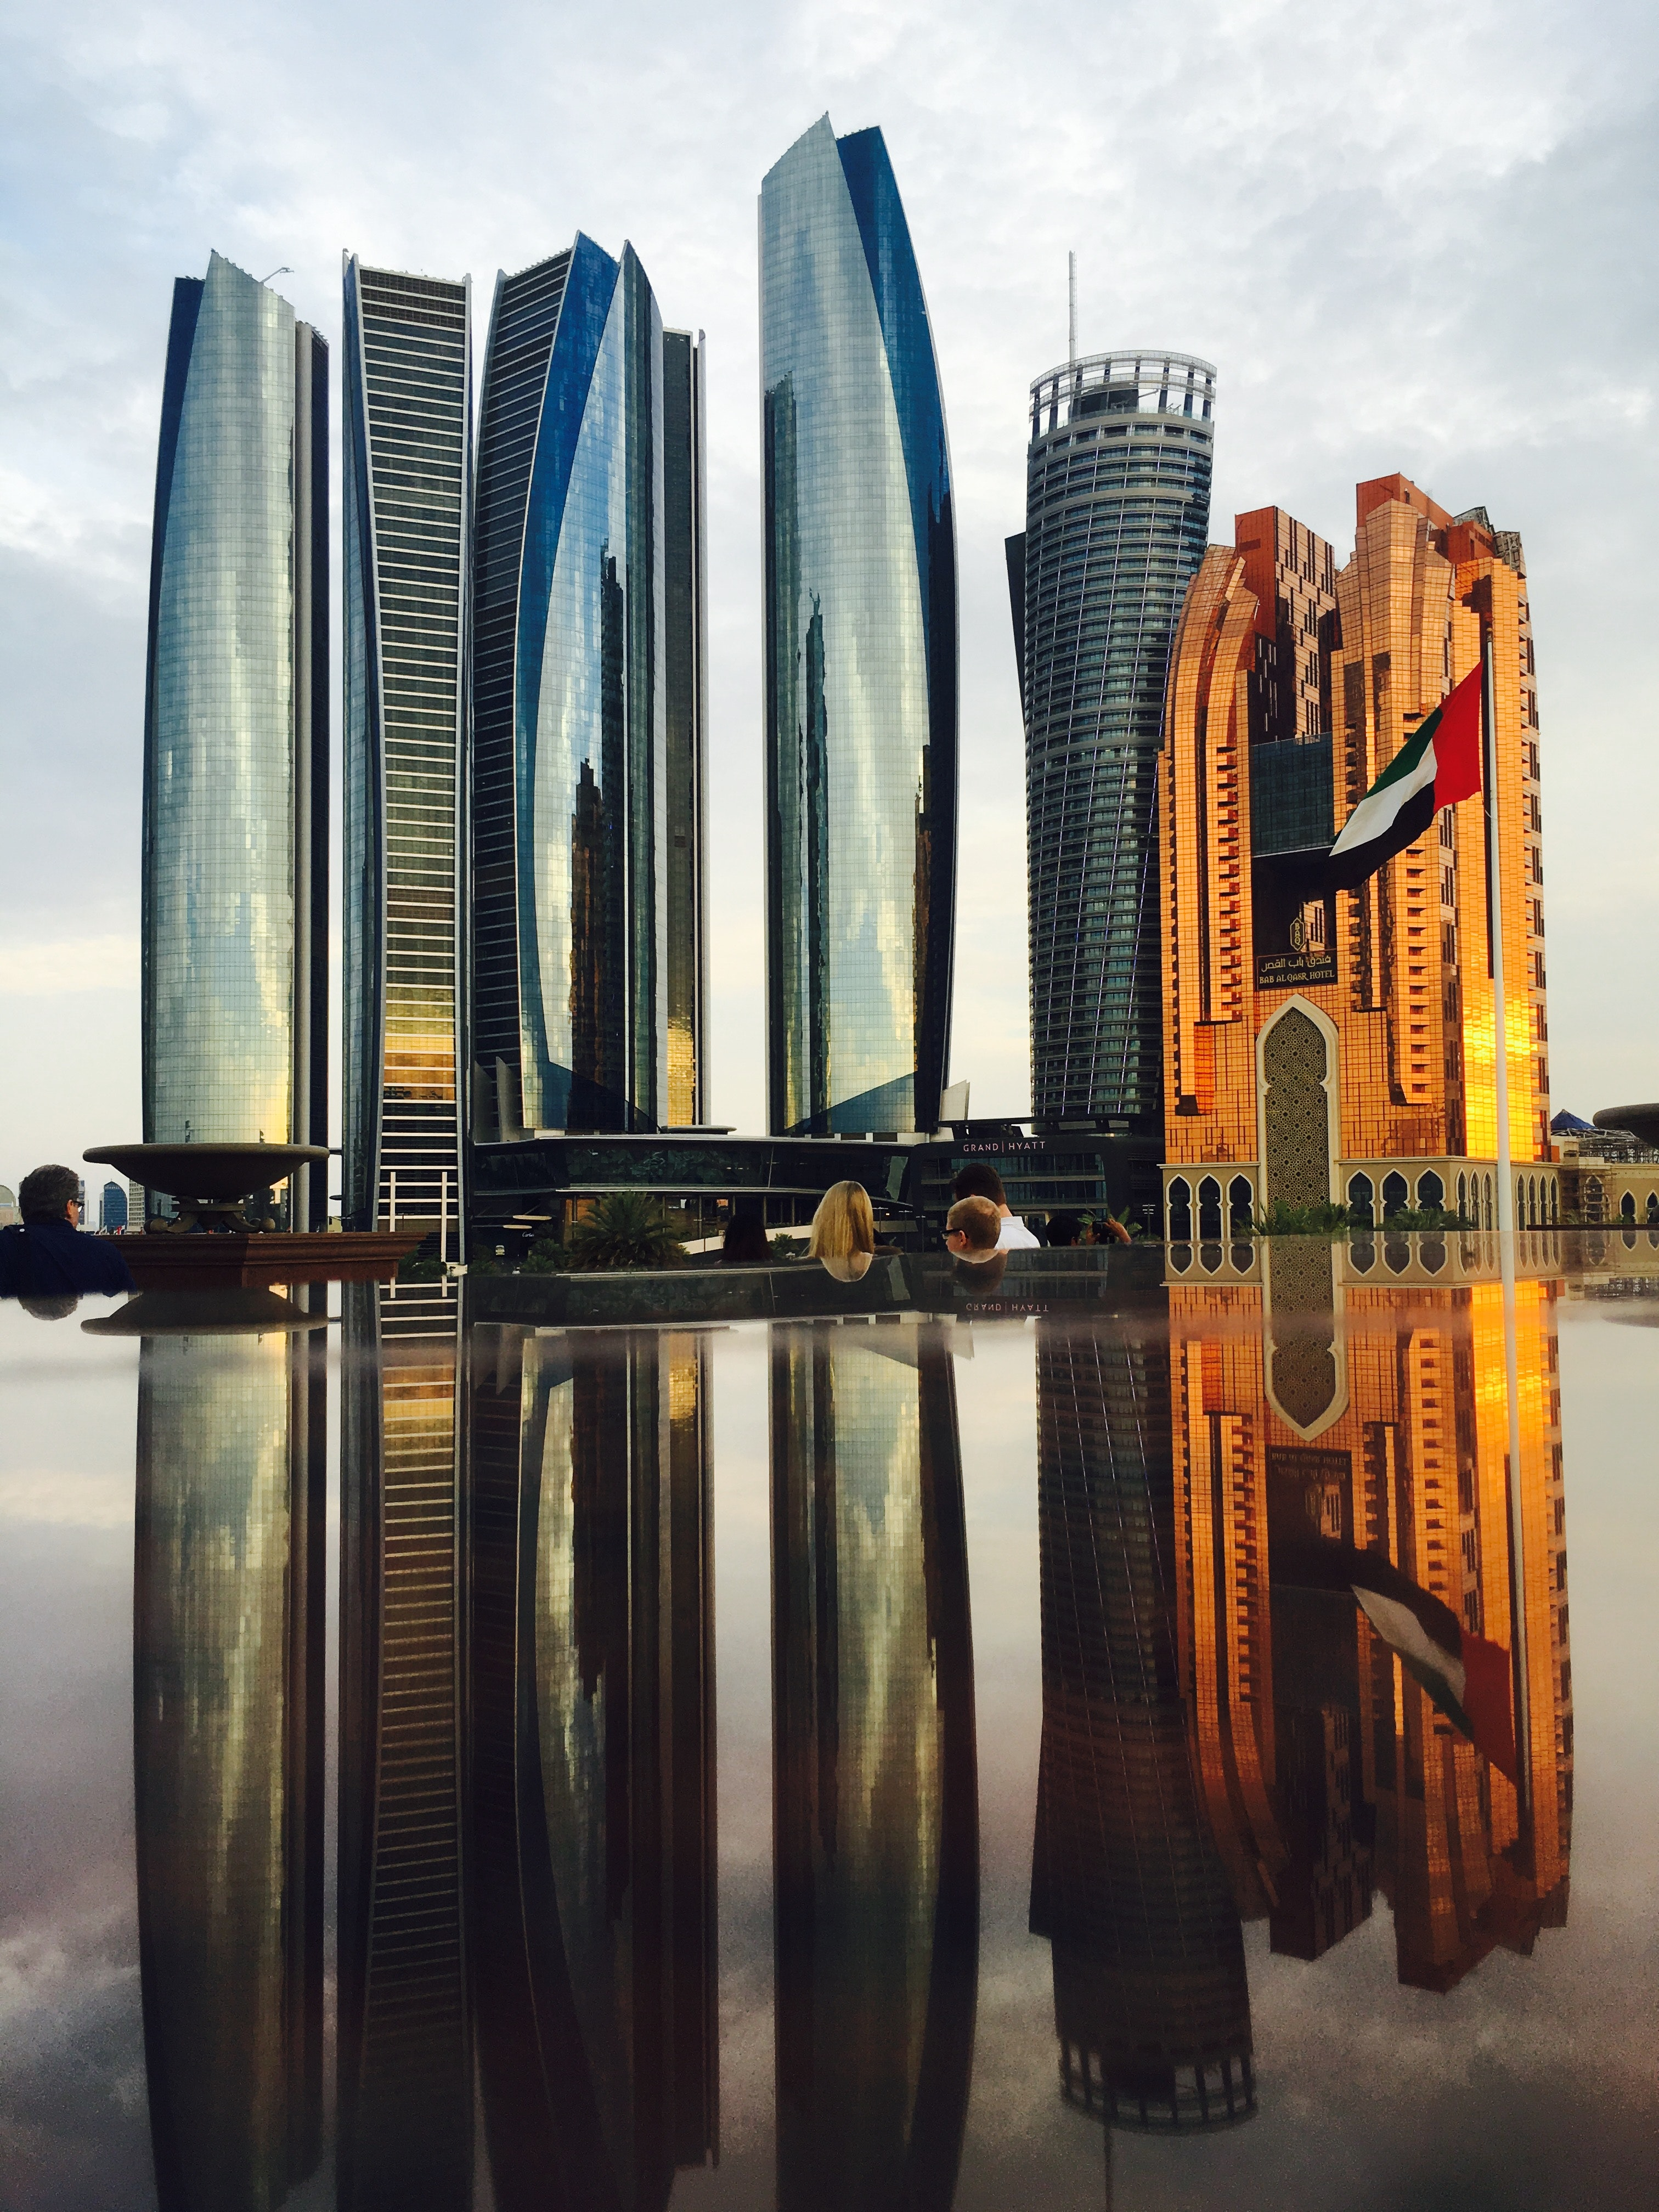 Reflection of Skyscrapers in City, Office, Vehicle, Urban, Travel, HQ Photo